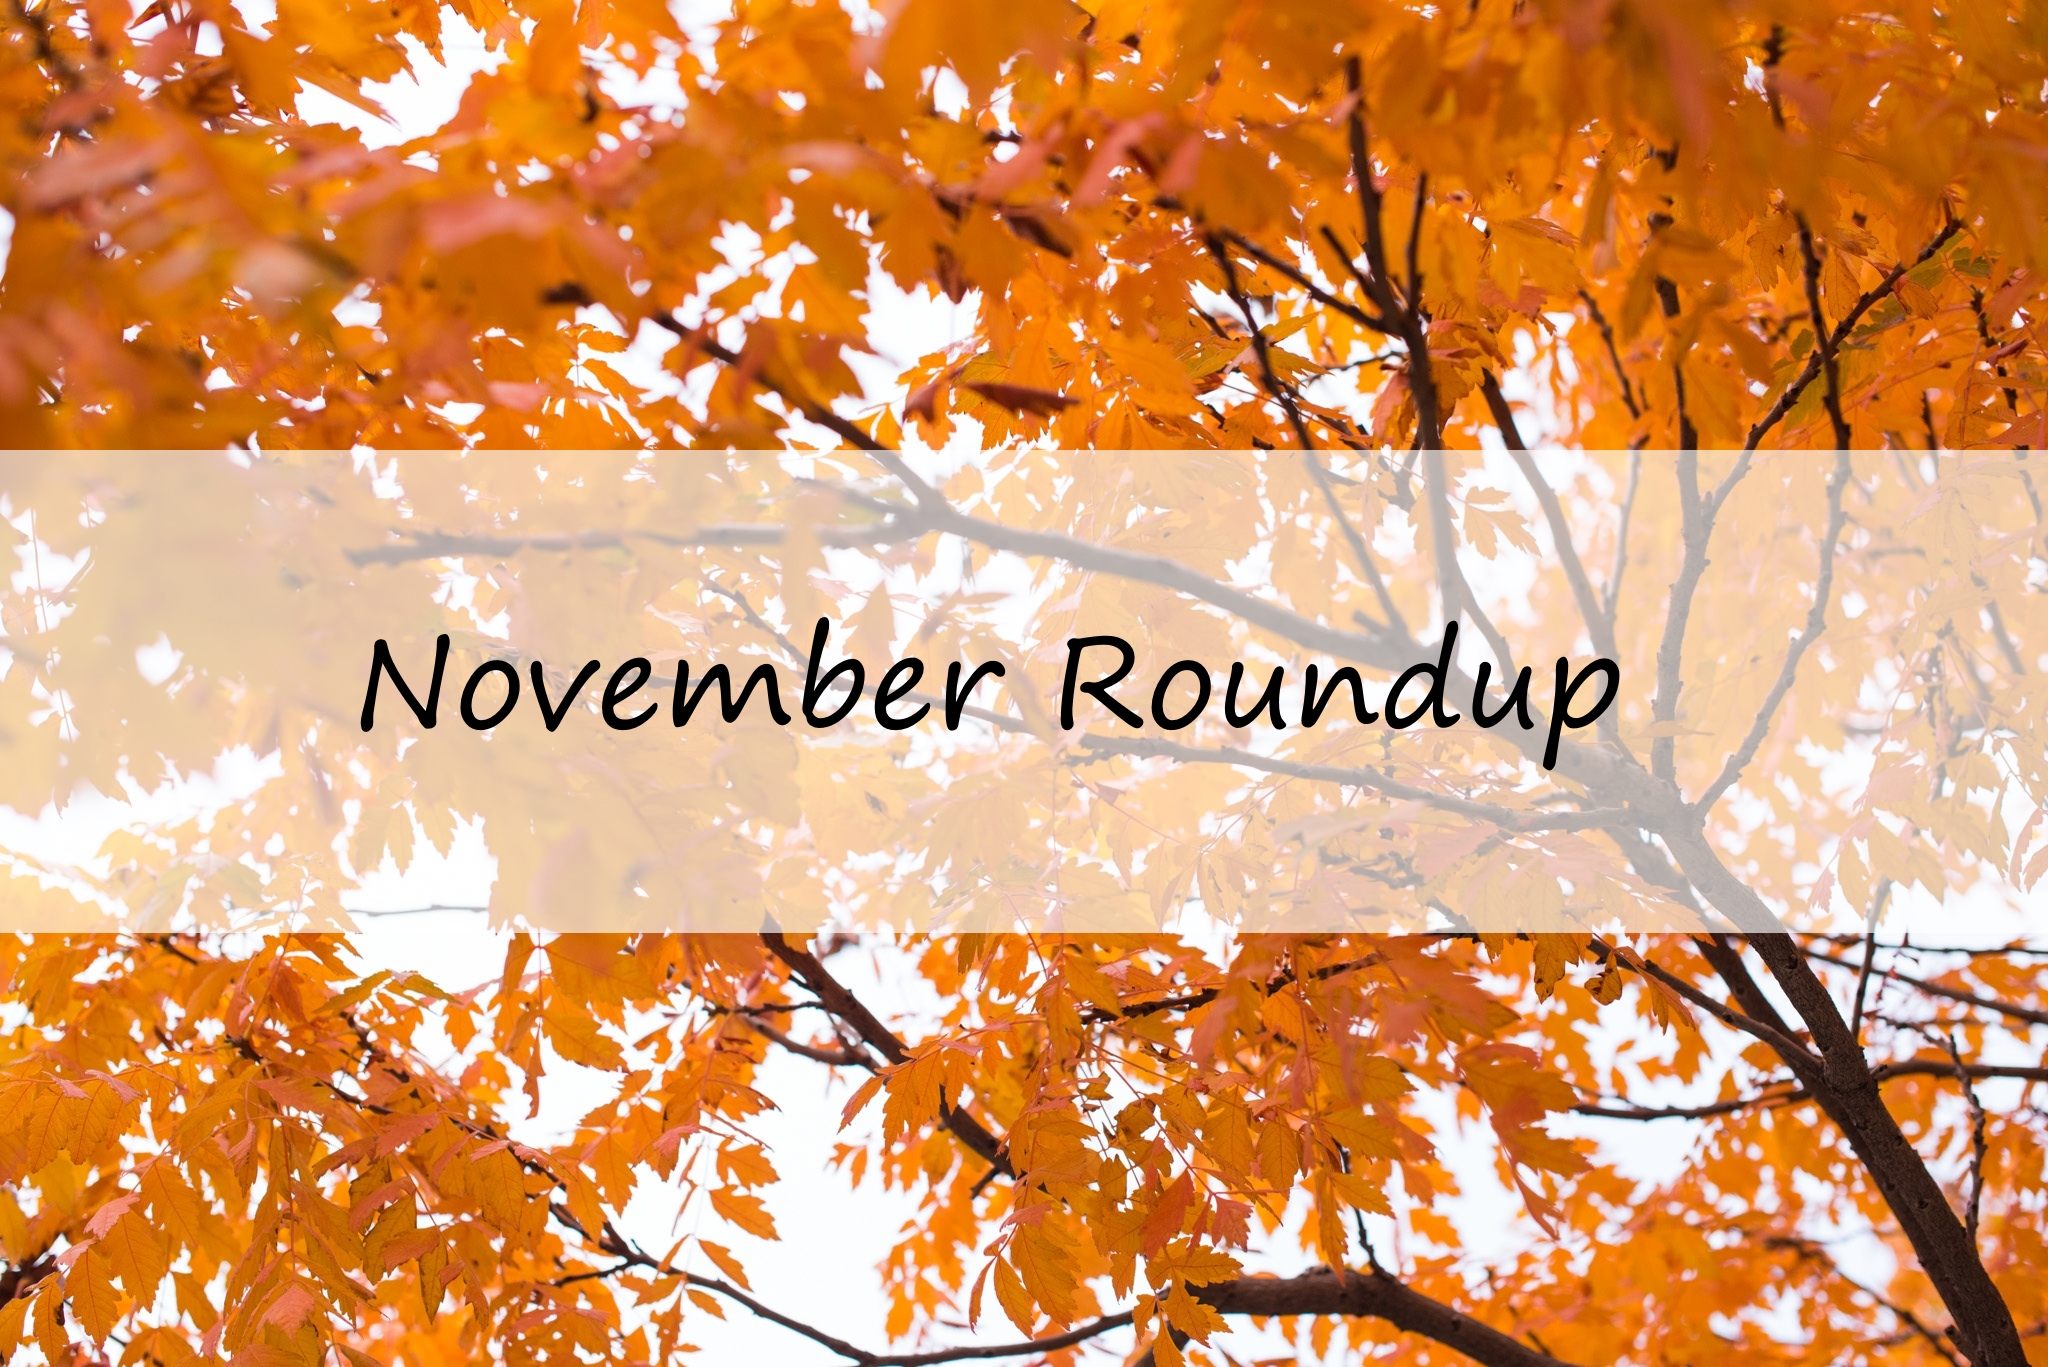 November Roundup: Project Management